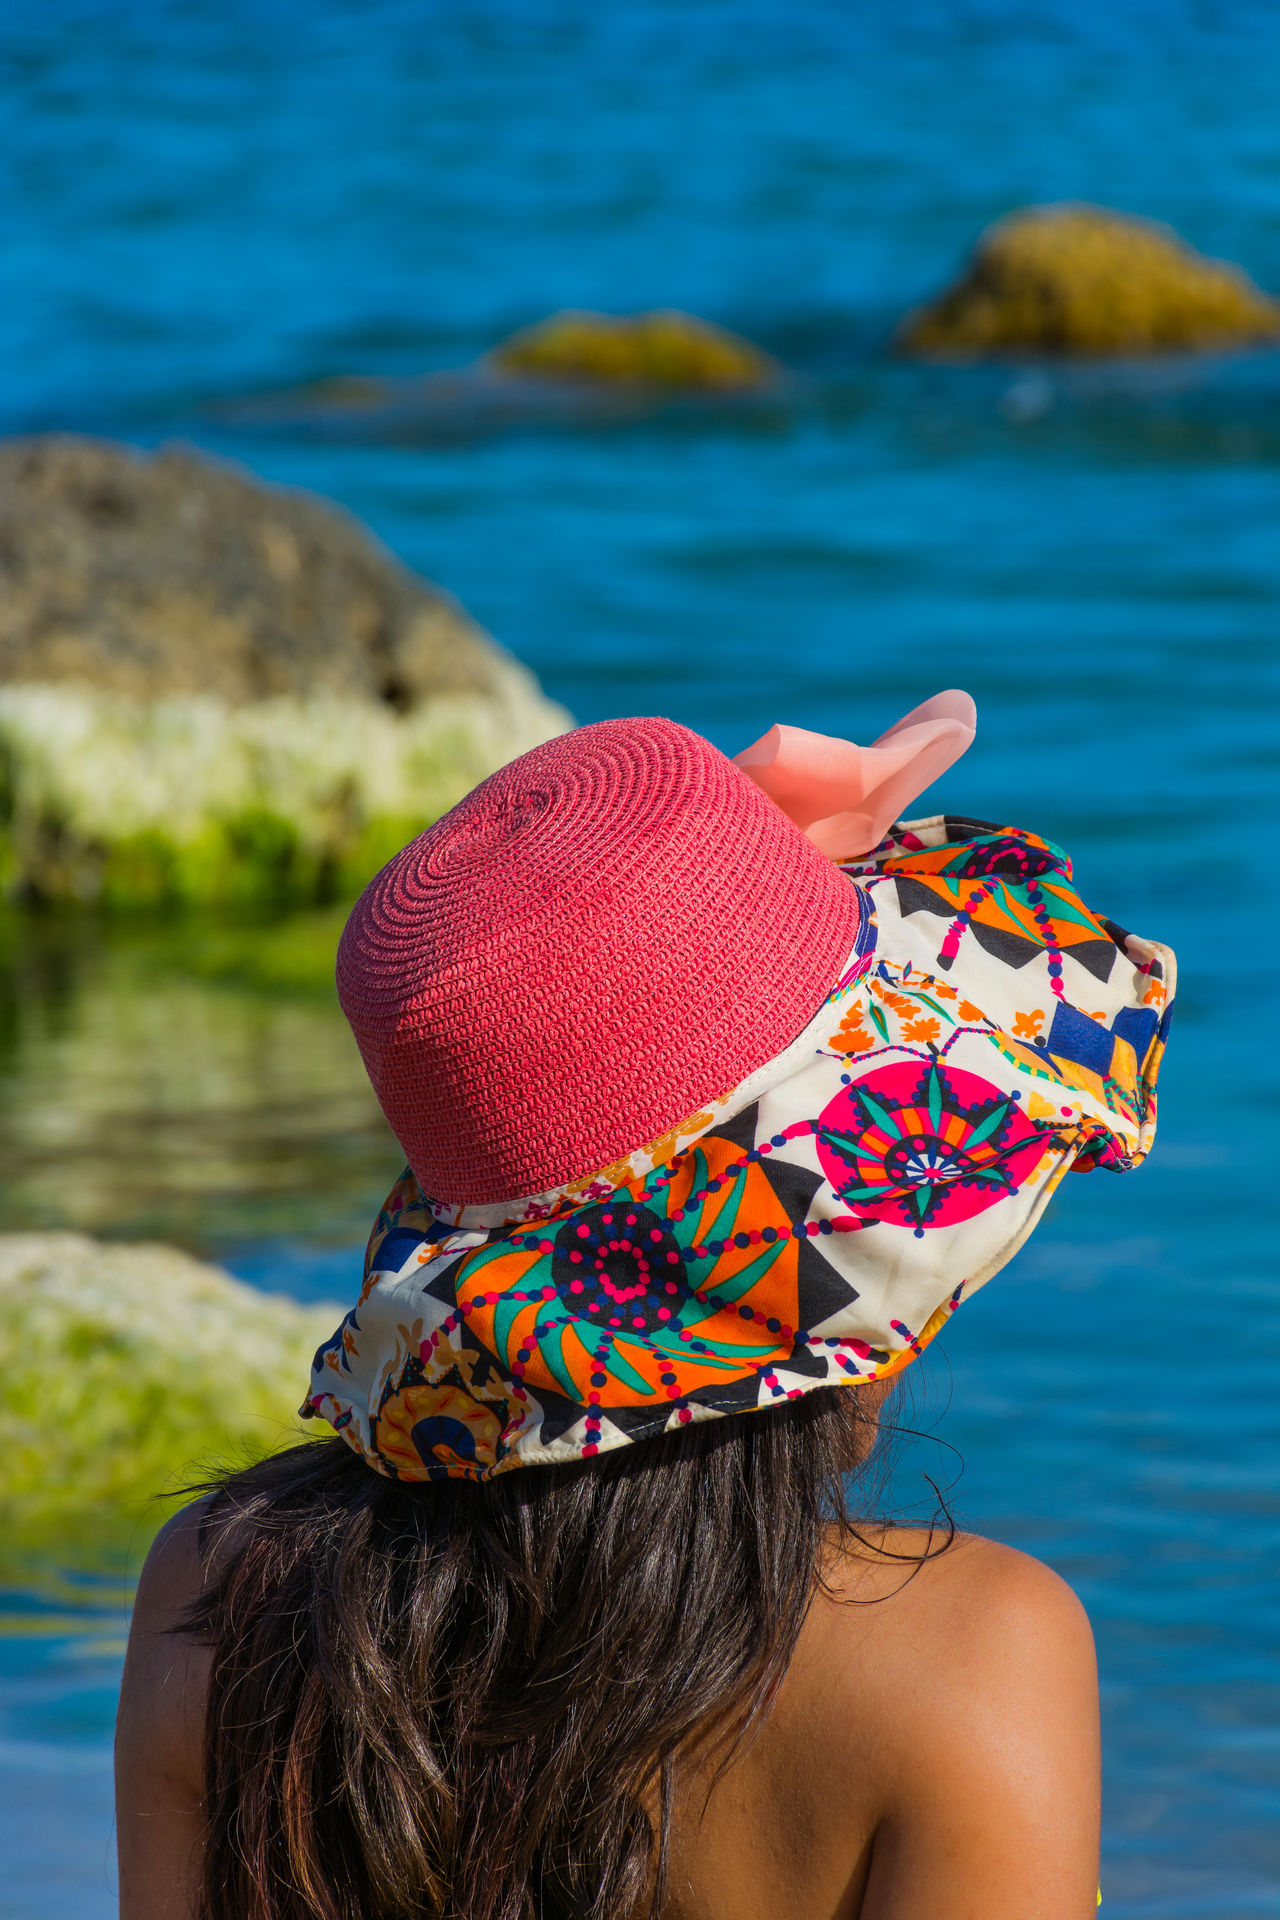 Girl Hat Holiday Holiday POV Holidays Sea Sea And Sky Seascape Seaside Summer Summertime Travel Travel Destinations Traveling Woman Woman Portrait Womanity